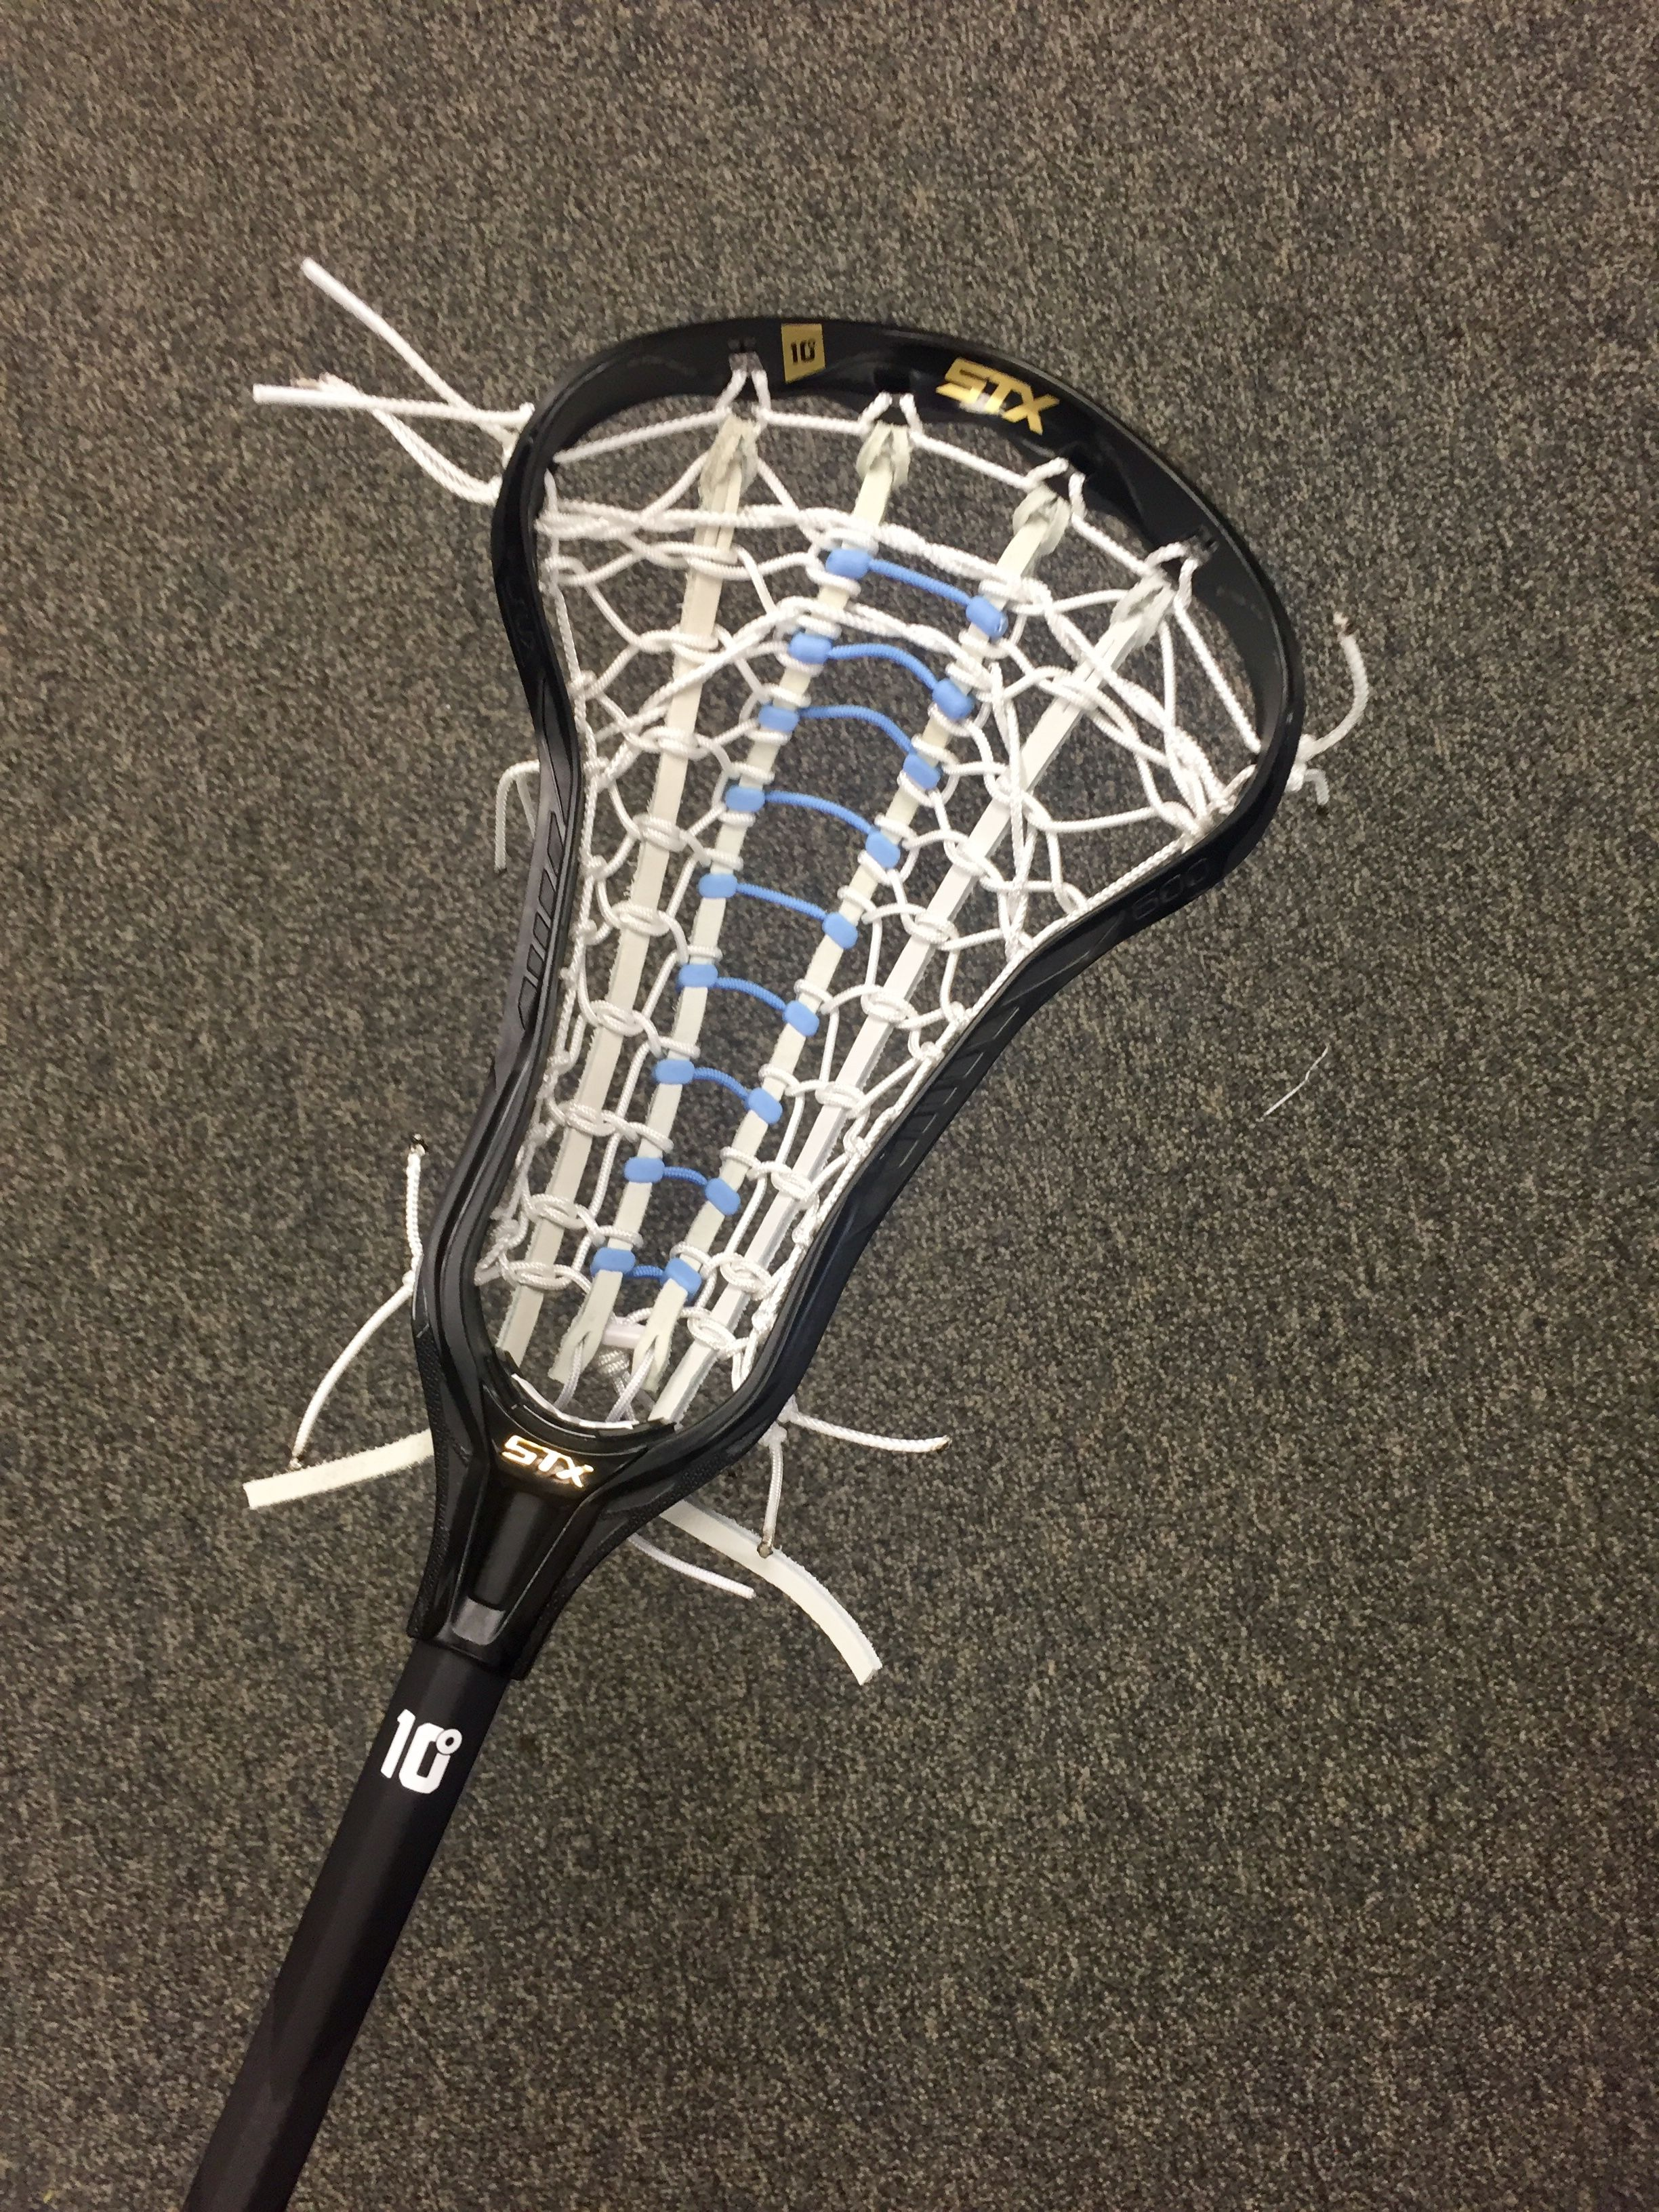 Women S Lacrosse Stick I Want To Start Playing Again And So I Need A Stick In Order To Do That Lacrosse Sticks Womens Lacrosse Gear Womens Lacrosse Sticks